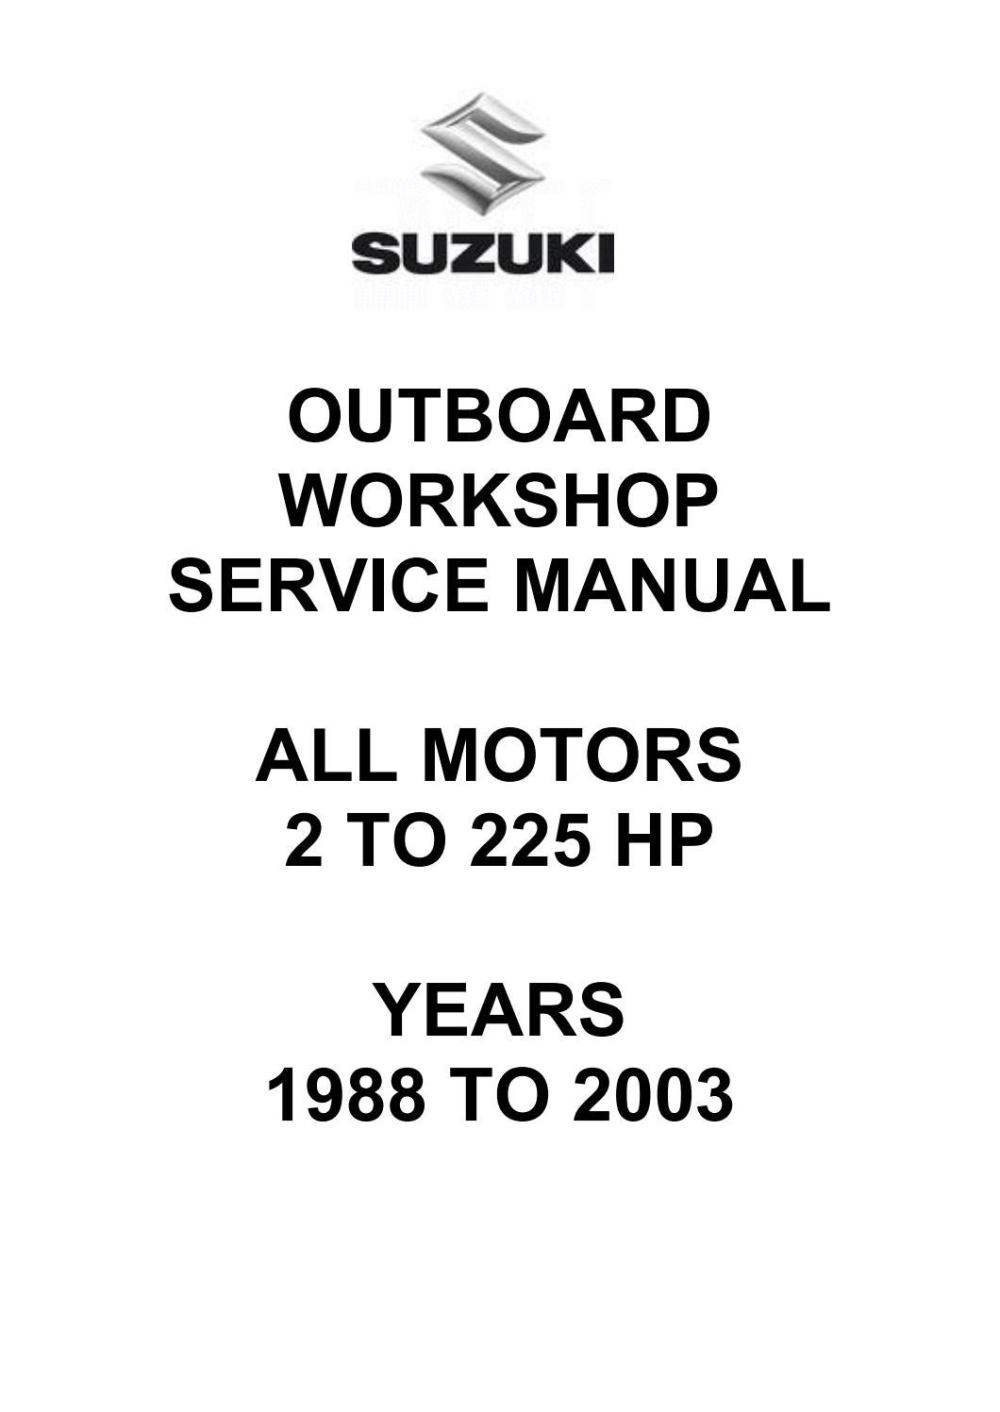 medium resolution of  array suzuki outboard workshop service manual all motors by glsense issuu rh issuu